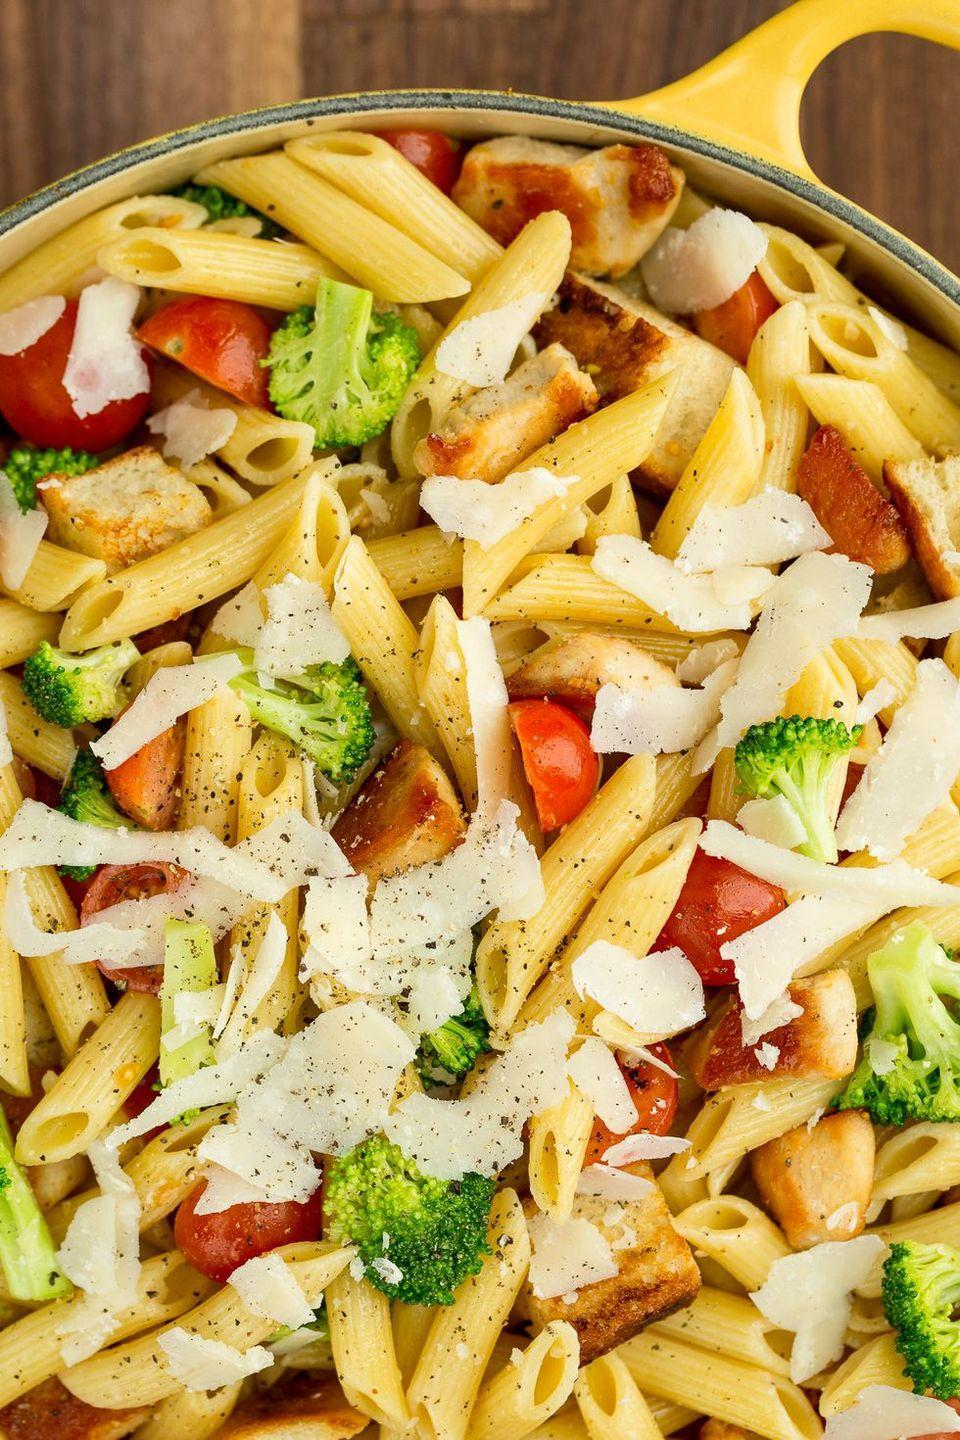 """<p>This is the perfect side for your next BBQ.</p><p>Get the <a href=""""https://www.delish.com/uk/cooking/recipes/a29260396/chicken-caesar-pasta-salad-recipe/"""" rel=""""nofollow noopener"""" target=""""_blank"""" data-ylk=""""slk:Chicken Caesar Pasta Salad"""" class=""""link rapid-noclick-resp"""">Chicken Caesar Pasta Salad</a> recipe.</p>"""